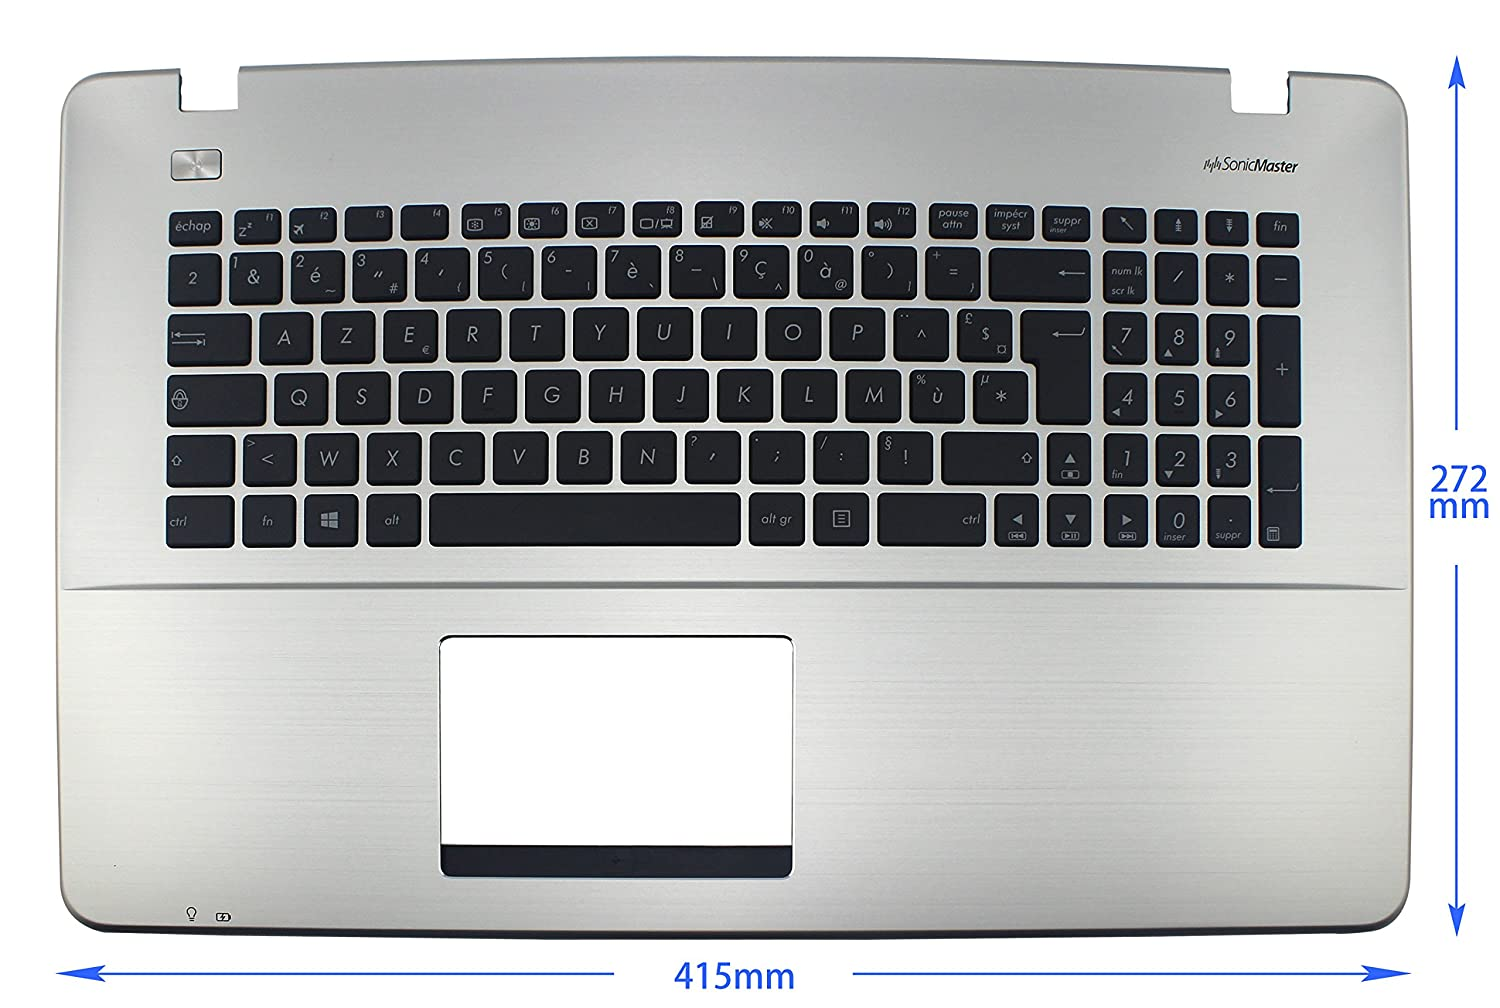 ASUS R752LA DRIVER FOR WINDOWS MAC